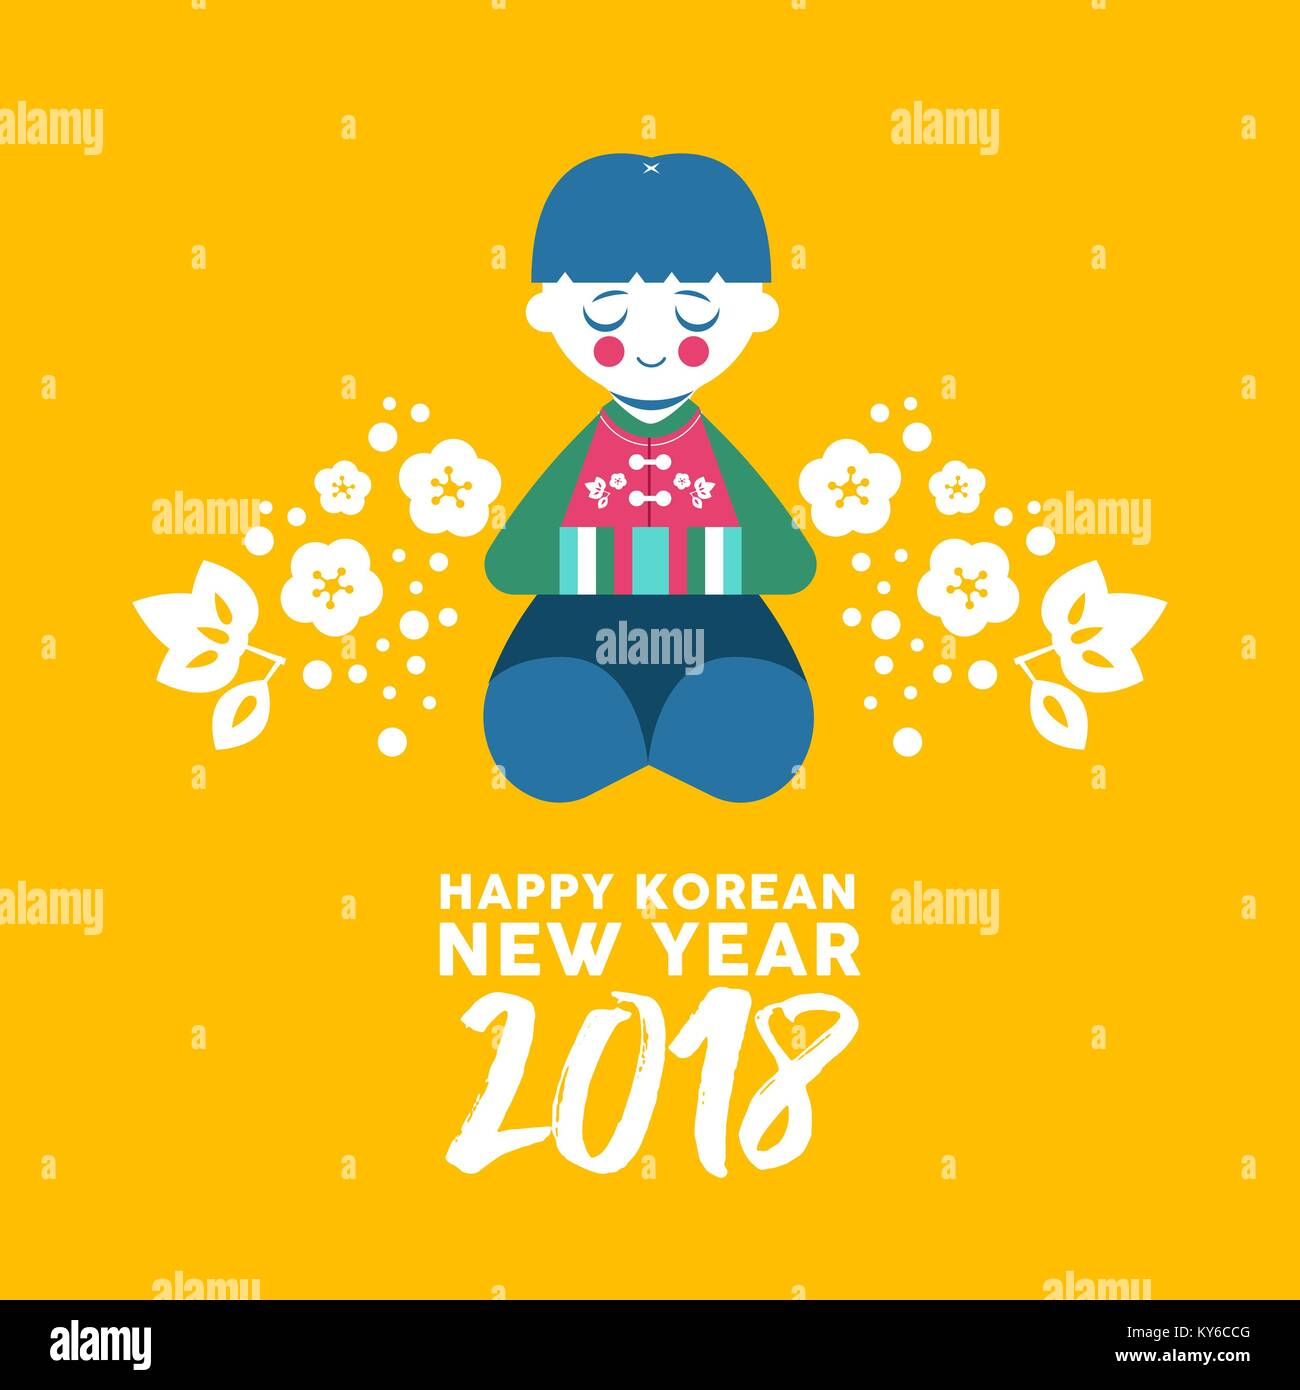 Happy korean new year 2018 greeting card cute boy bowing for stock happy korean new year 2018 greeting card cute boy bowing for happiness and good fortune kid in colorful traditional hanbok dress with text quote fl m4hsunfo